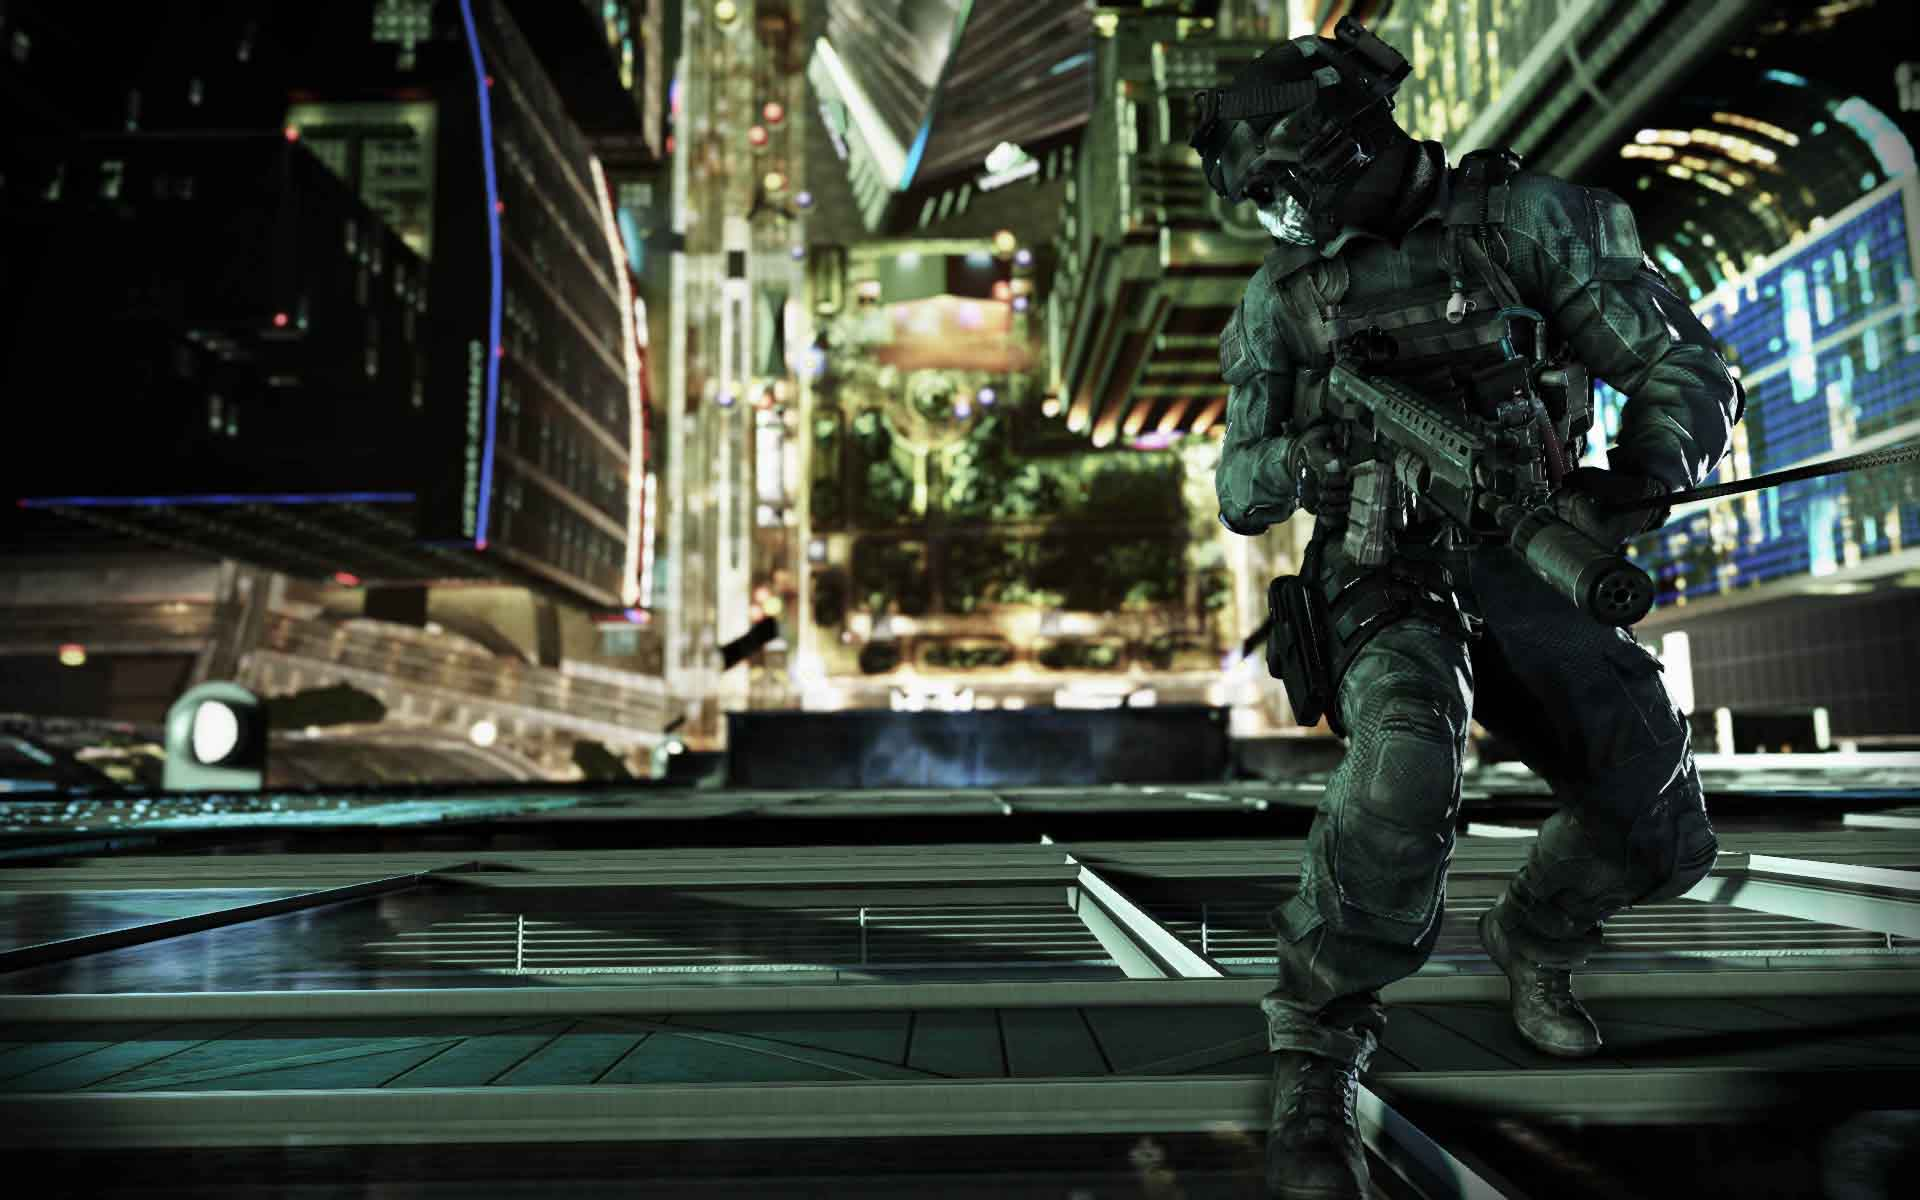 http://www.callofduty.com/content/dam/atvi/callofduty/ghosts/images/CODGhosts_FederationDayRappel.jpg